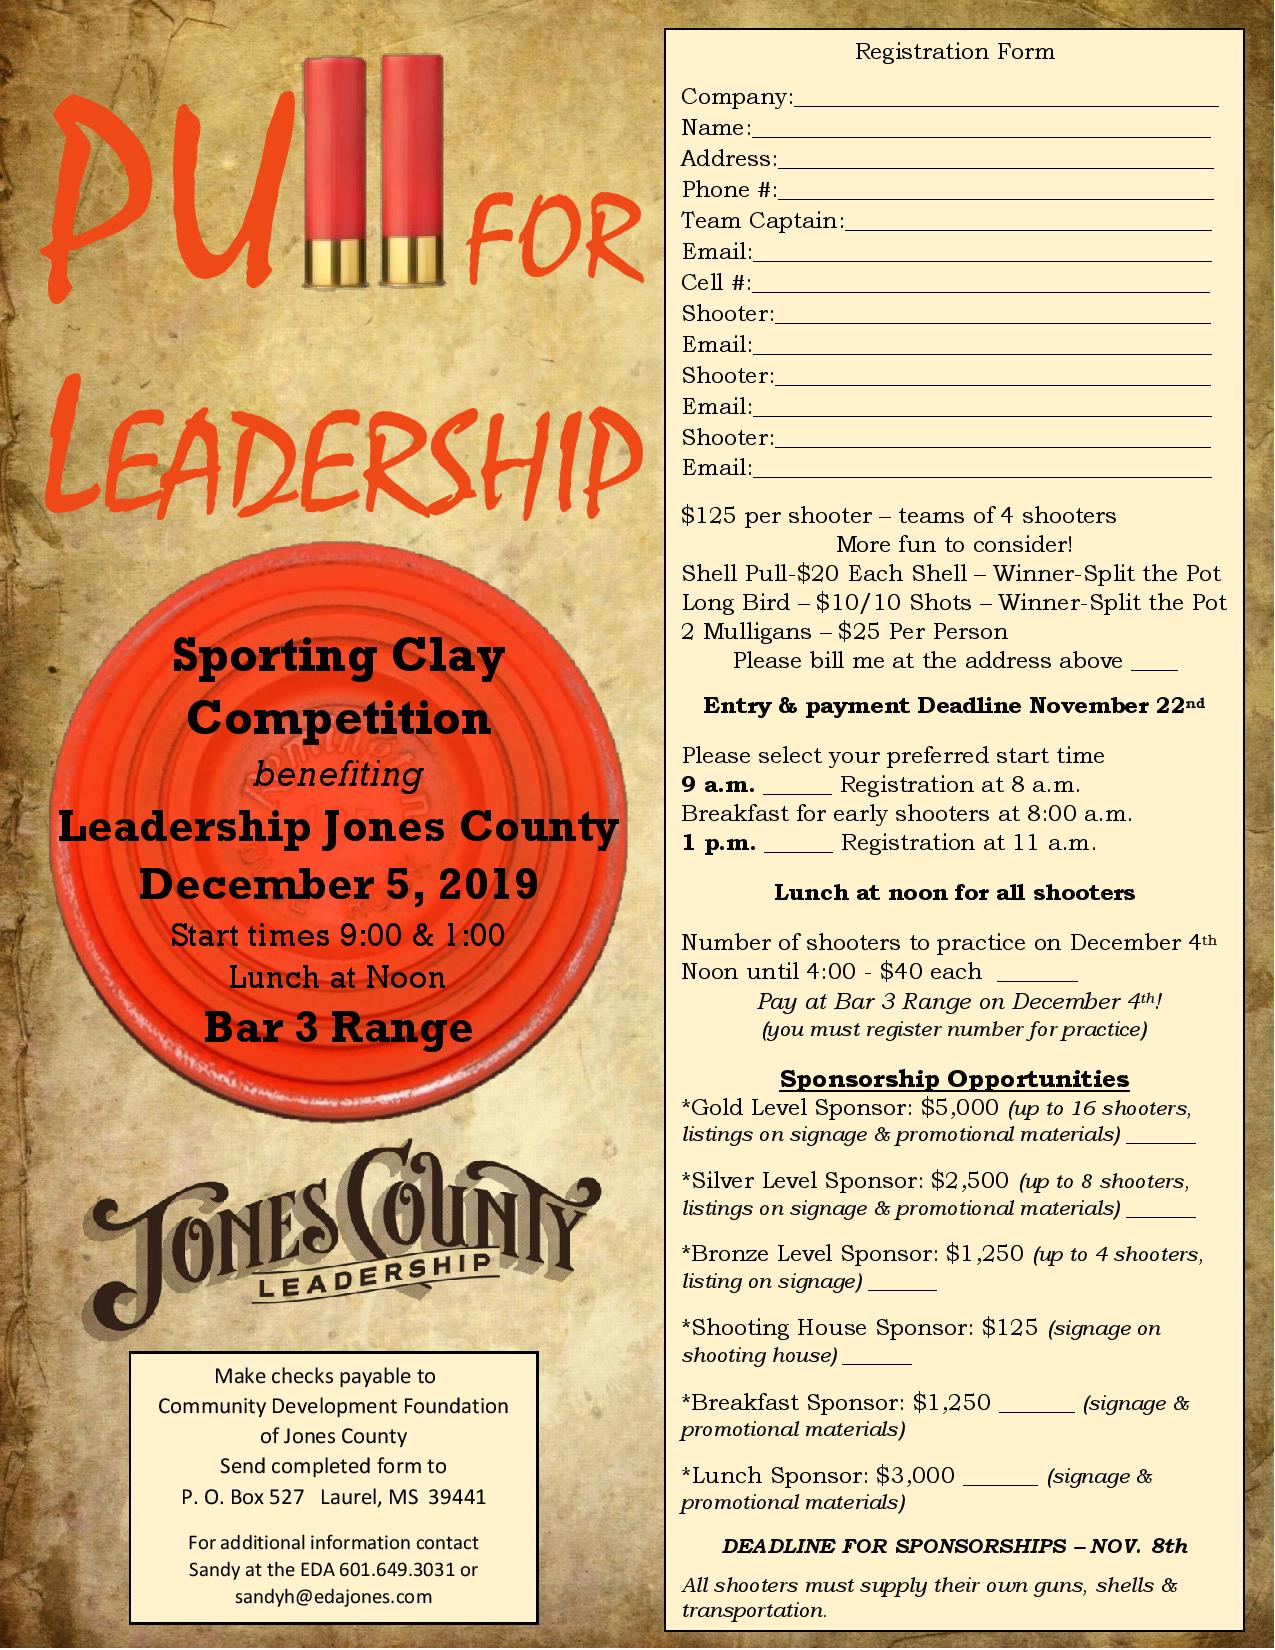 The City of Laurel, Pull for Leadership Sporting Clay Competition benefiting Leadership Jones County